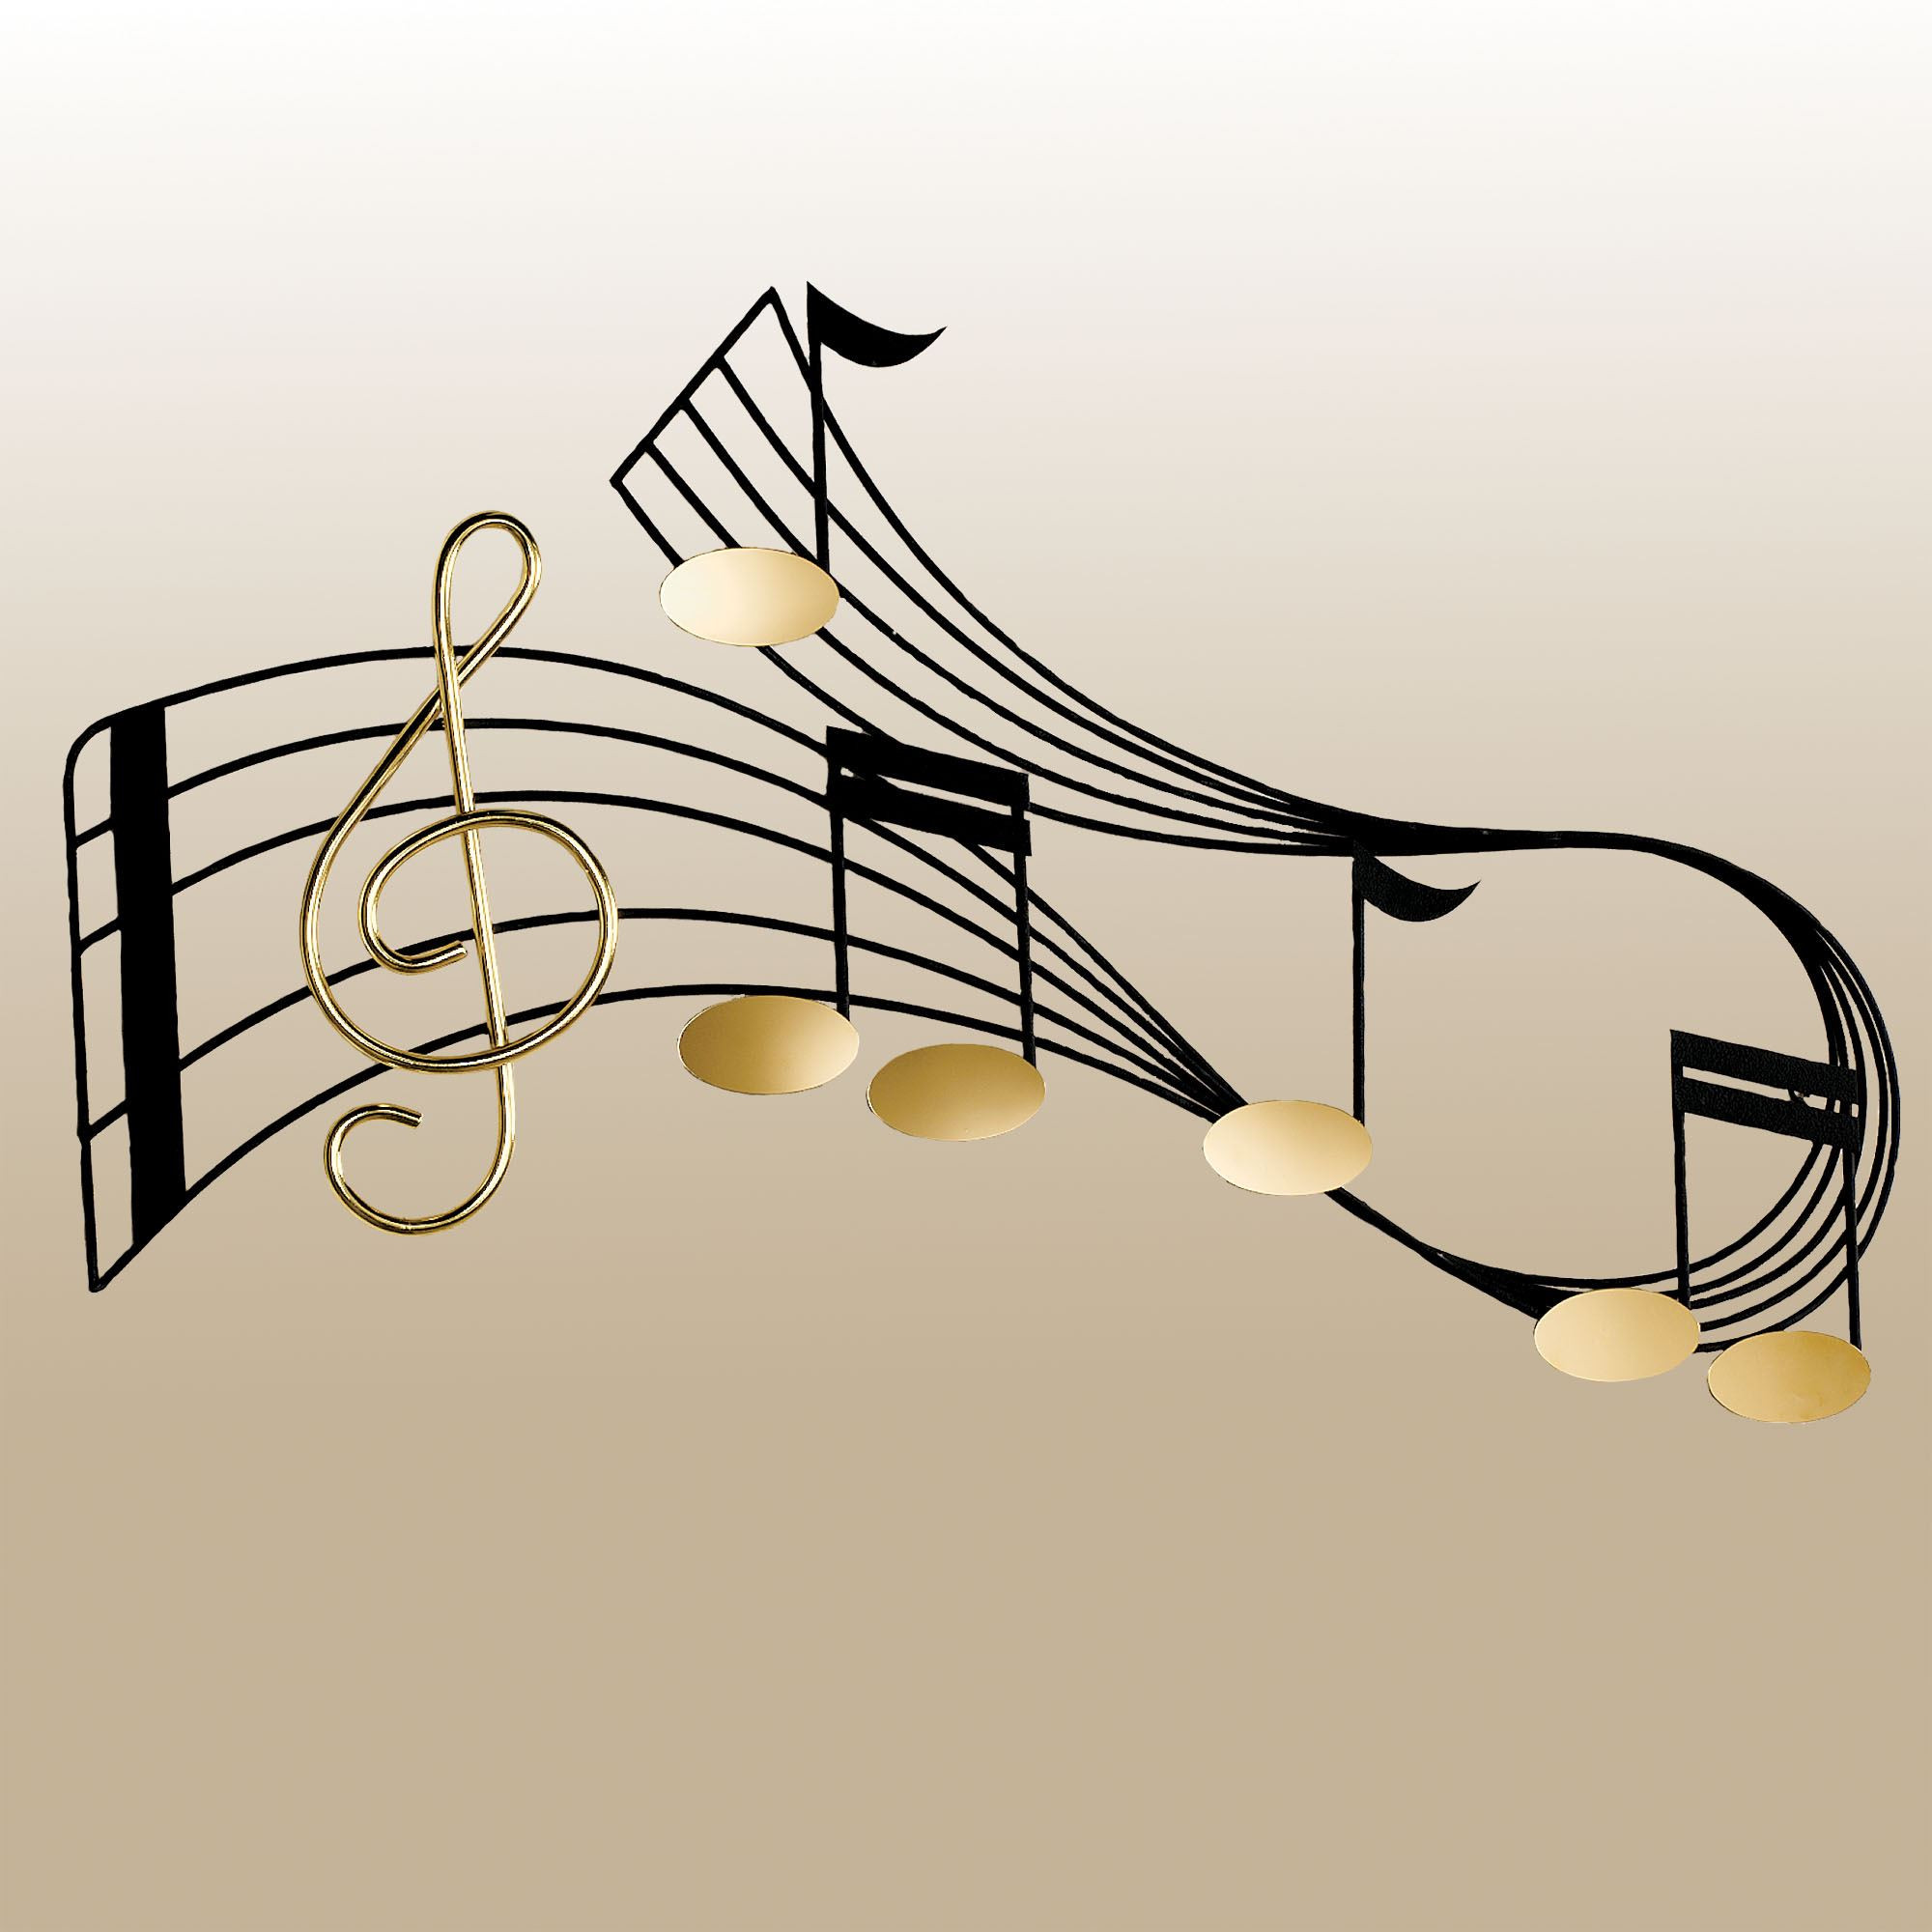 Best ideas about Music Wall Art . Save or Pin Rhythm Metal Wall Sculpture Now.